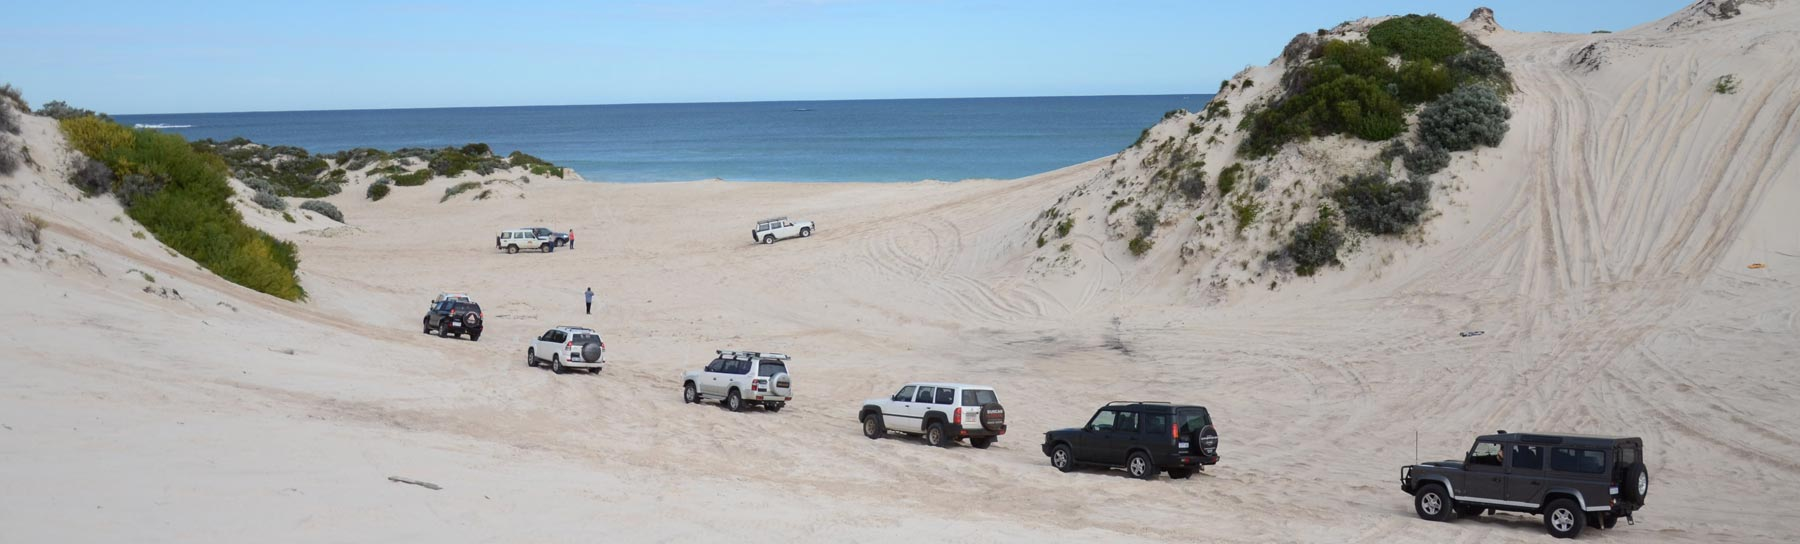 Learn to 4WD Safely and Responsibly in your own vehicle – bring your family and friends.